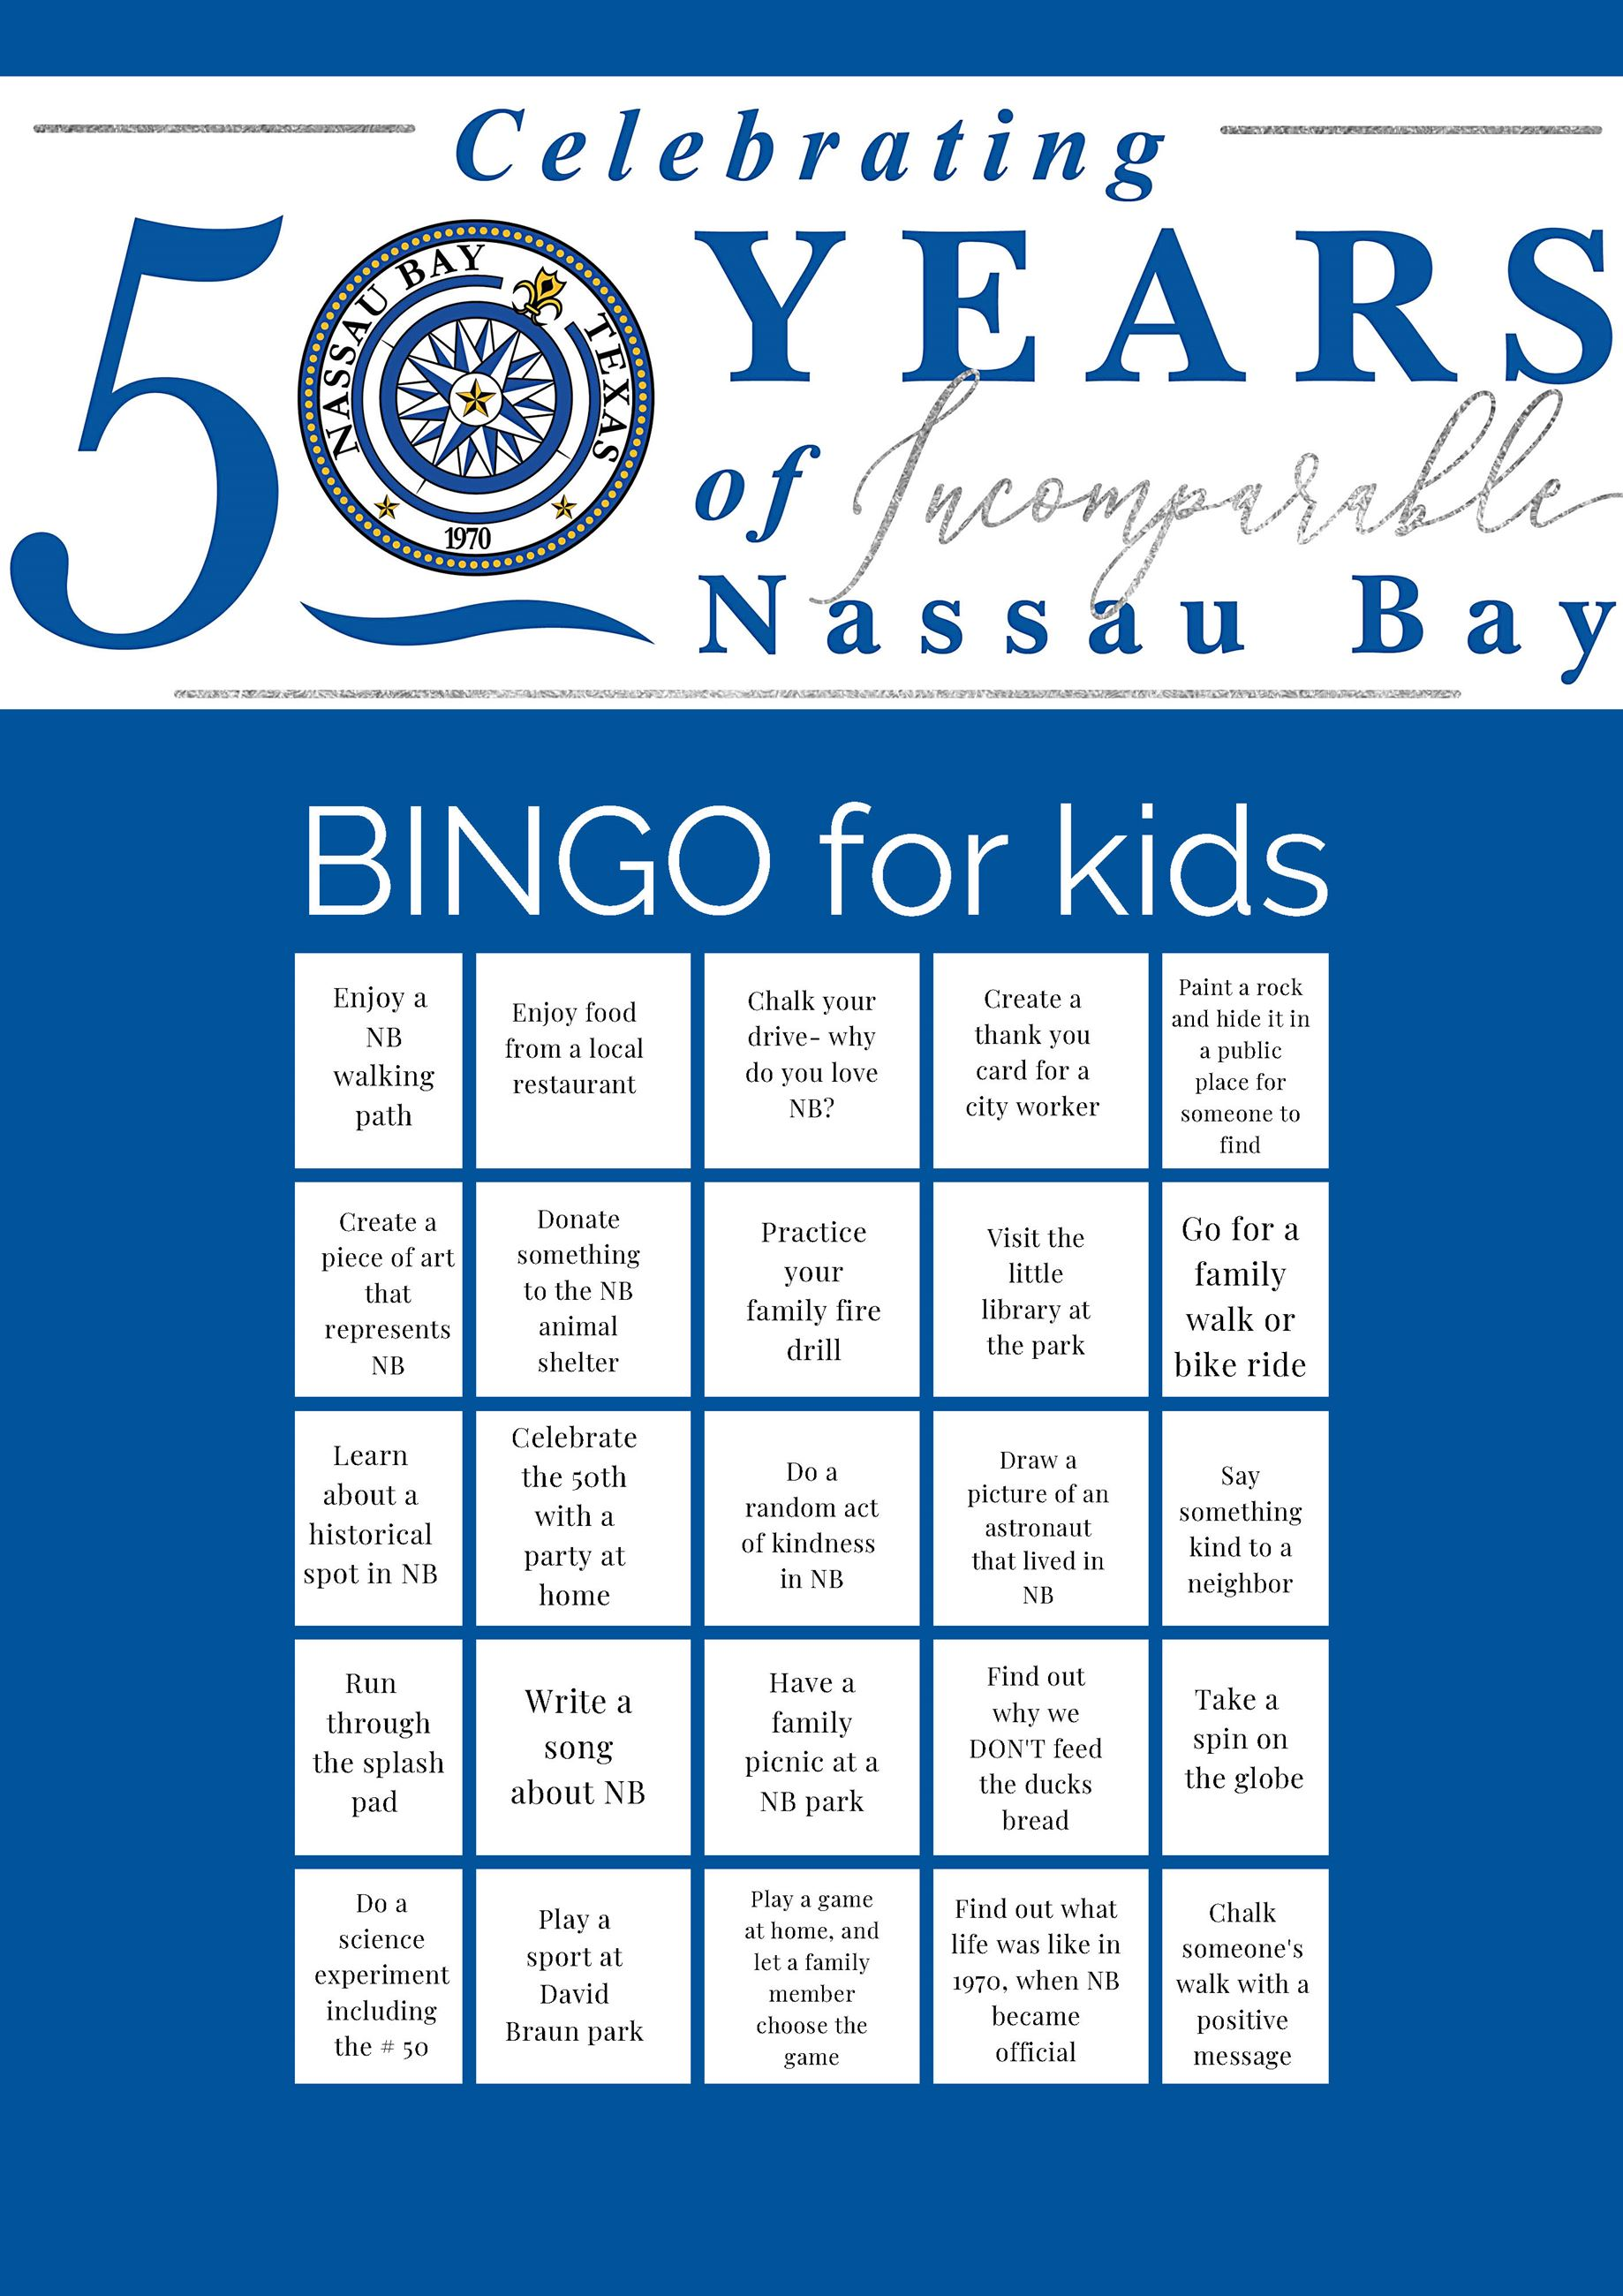 Nassau Bay 50th Bingo KIDS Opens in new window